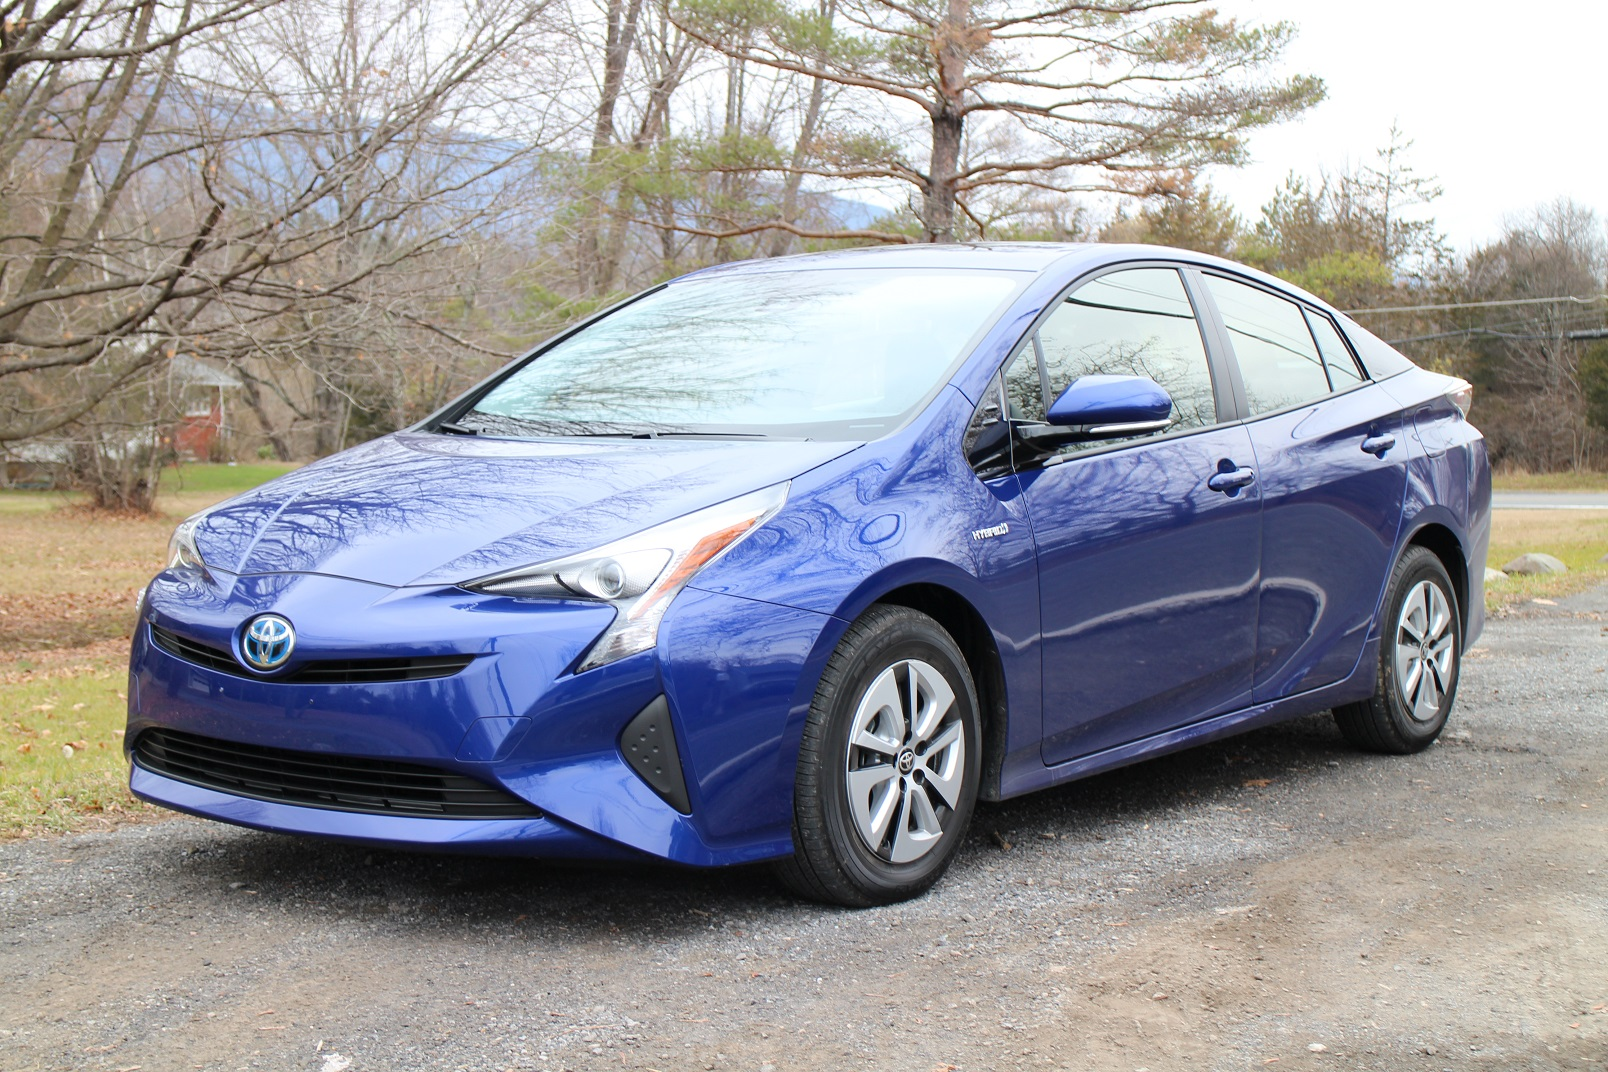 2016 toyota prius gas mileage review of 50 mpg plus hybrid. Black Bedroom Furniture Sets. Home Design Ideas